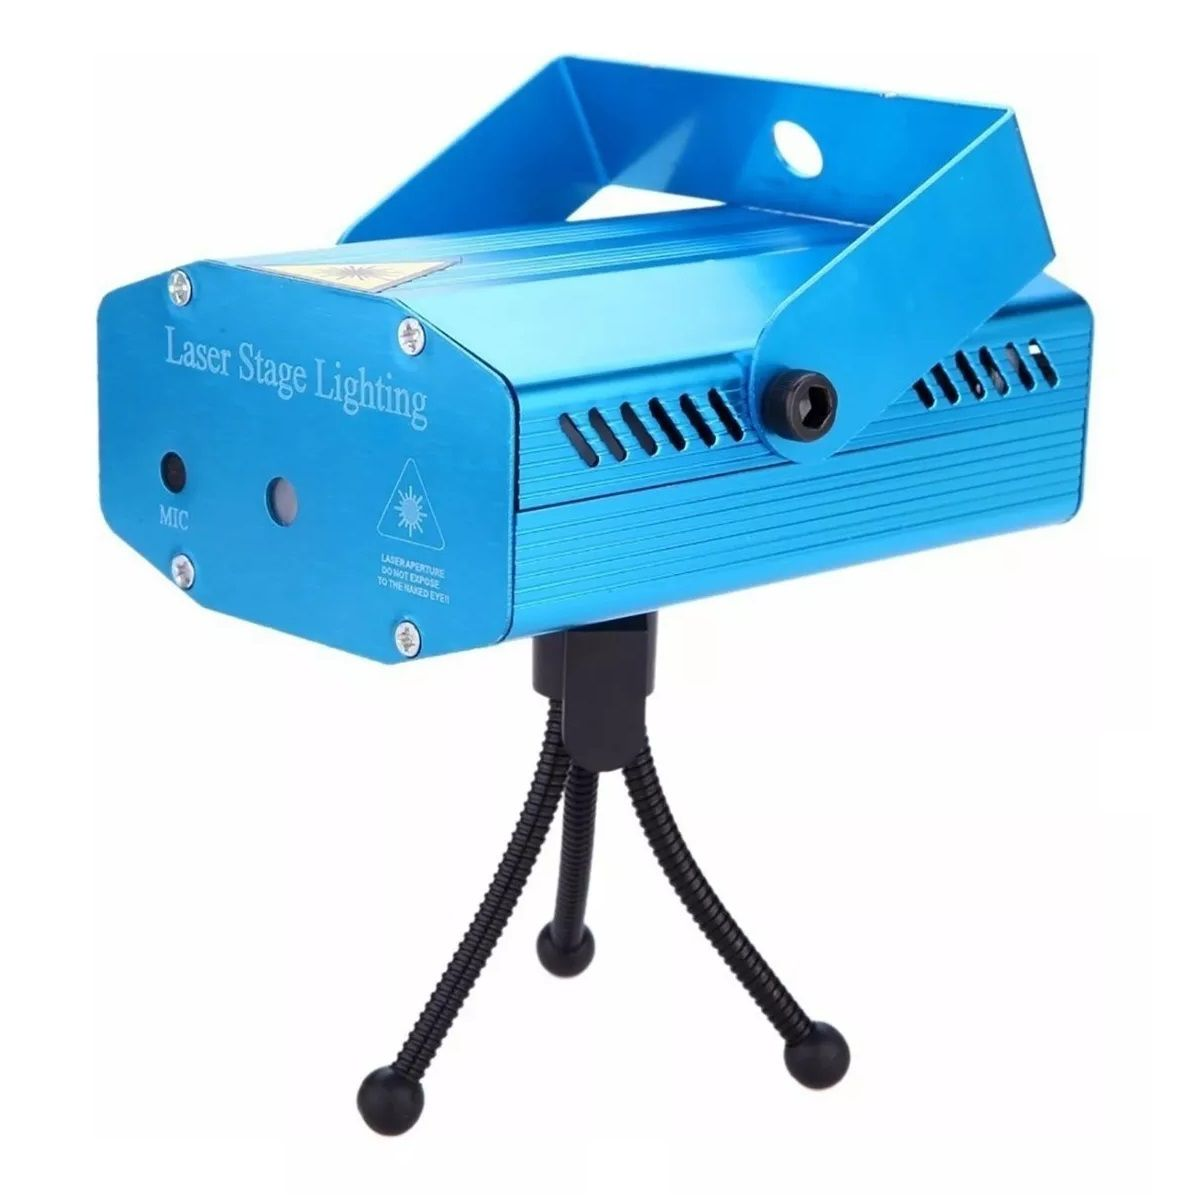 Mini Laser Projetor Holográfico Stage Lighting Azul - SD-09